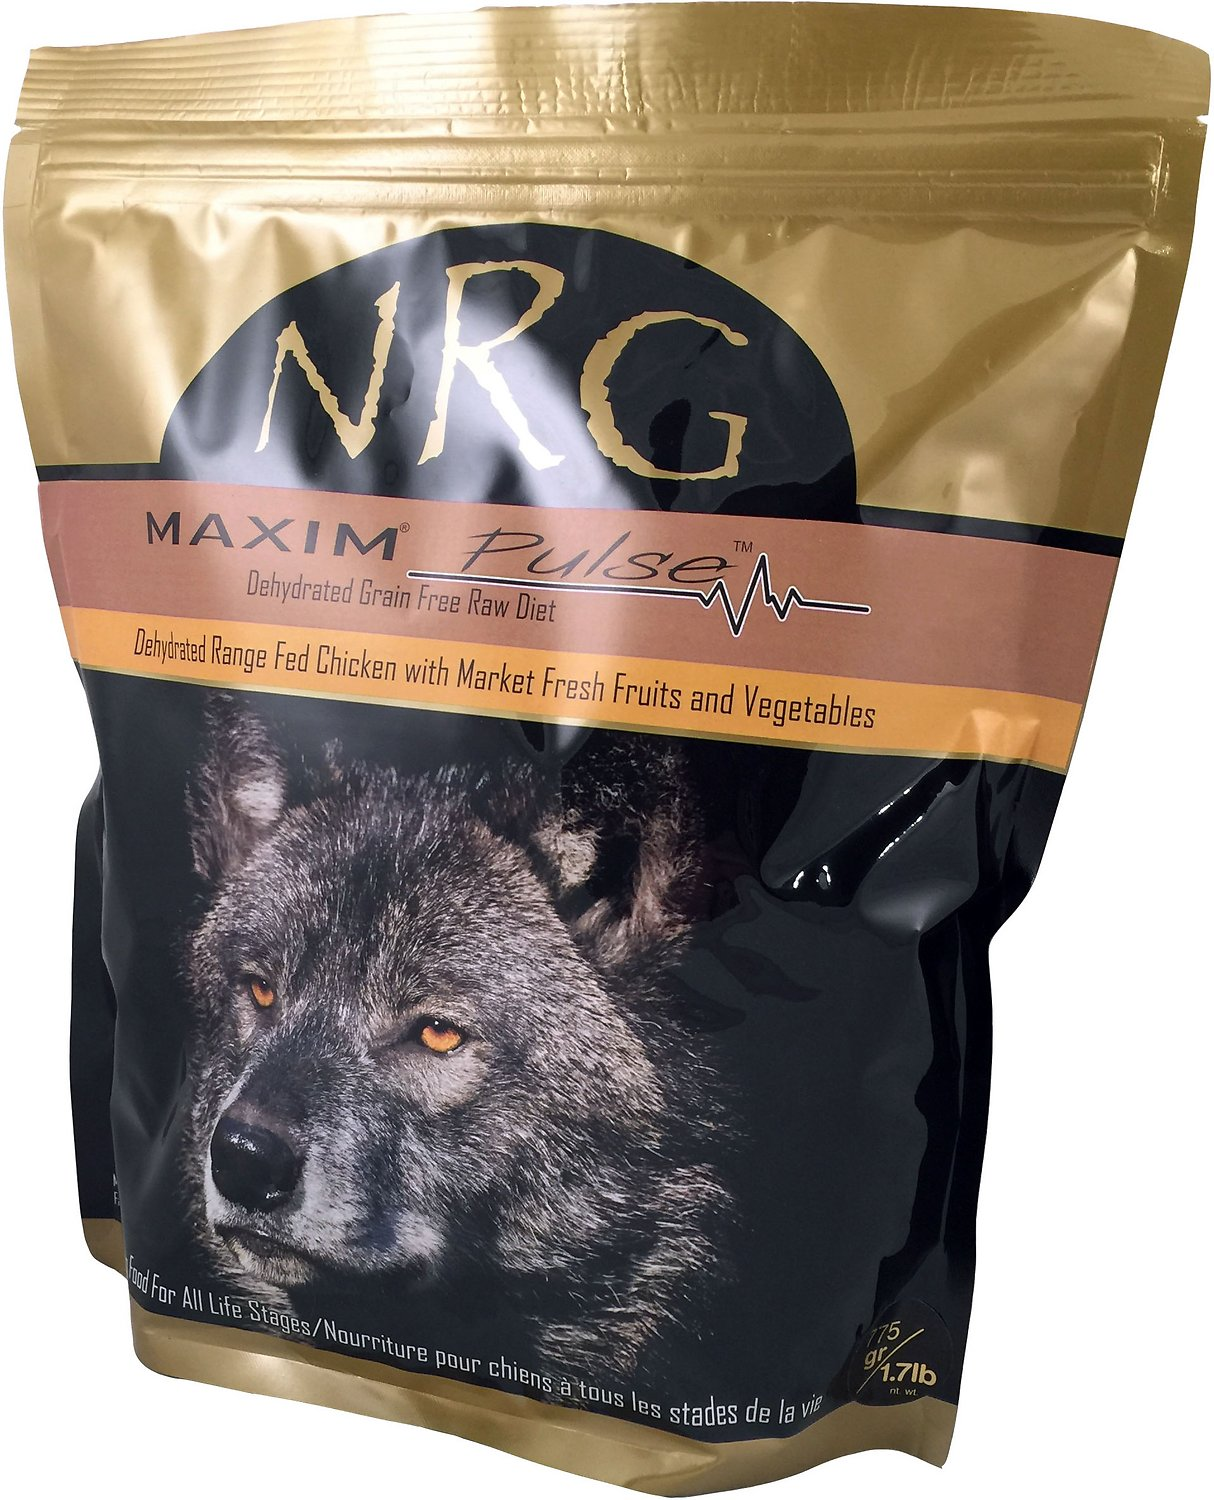 Nrg Dehydrated Dog Food Reviews